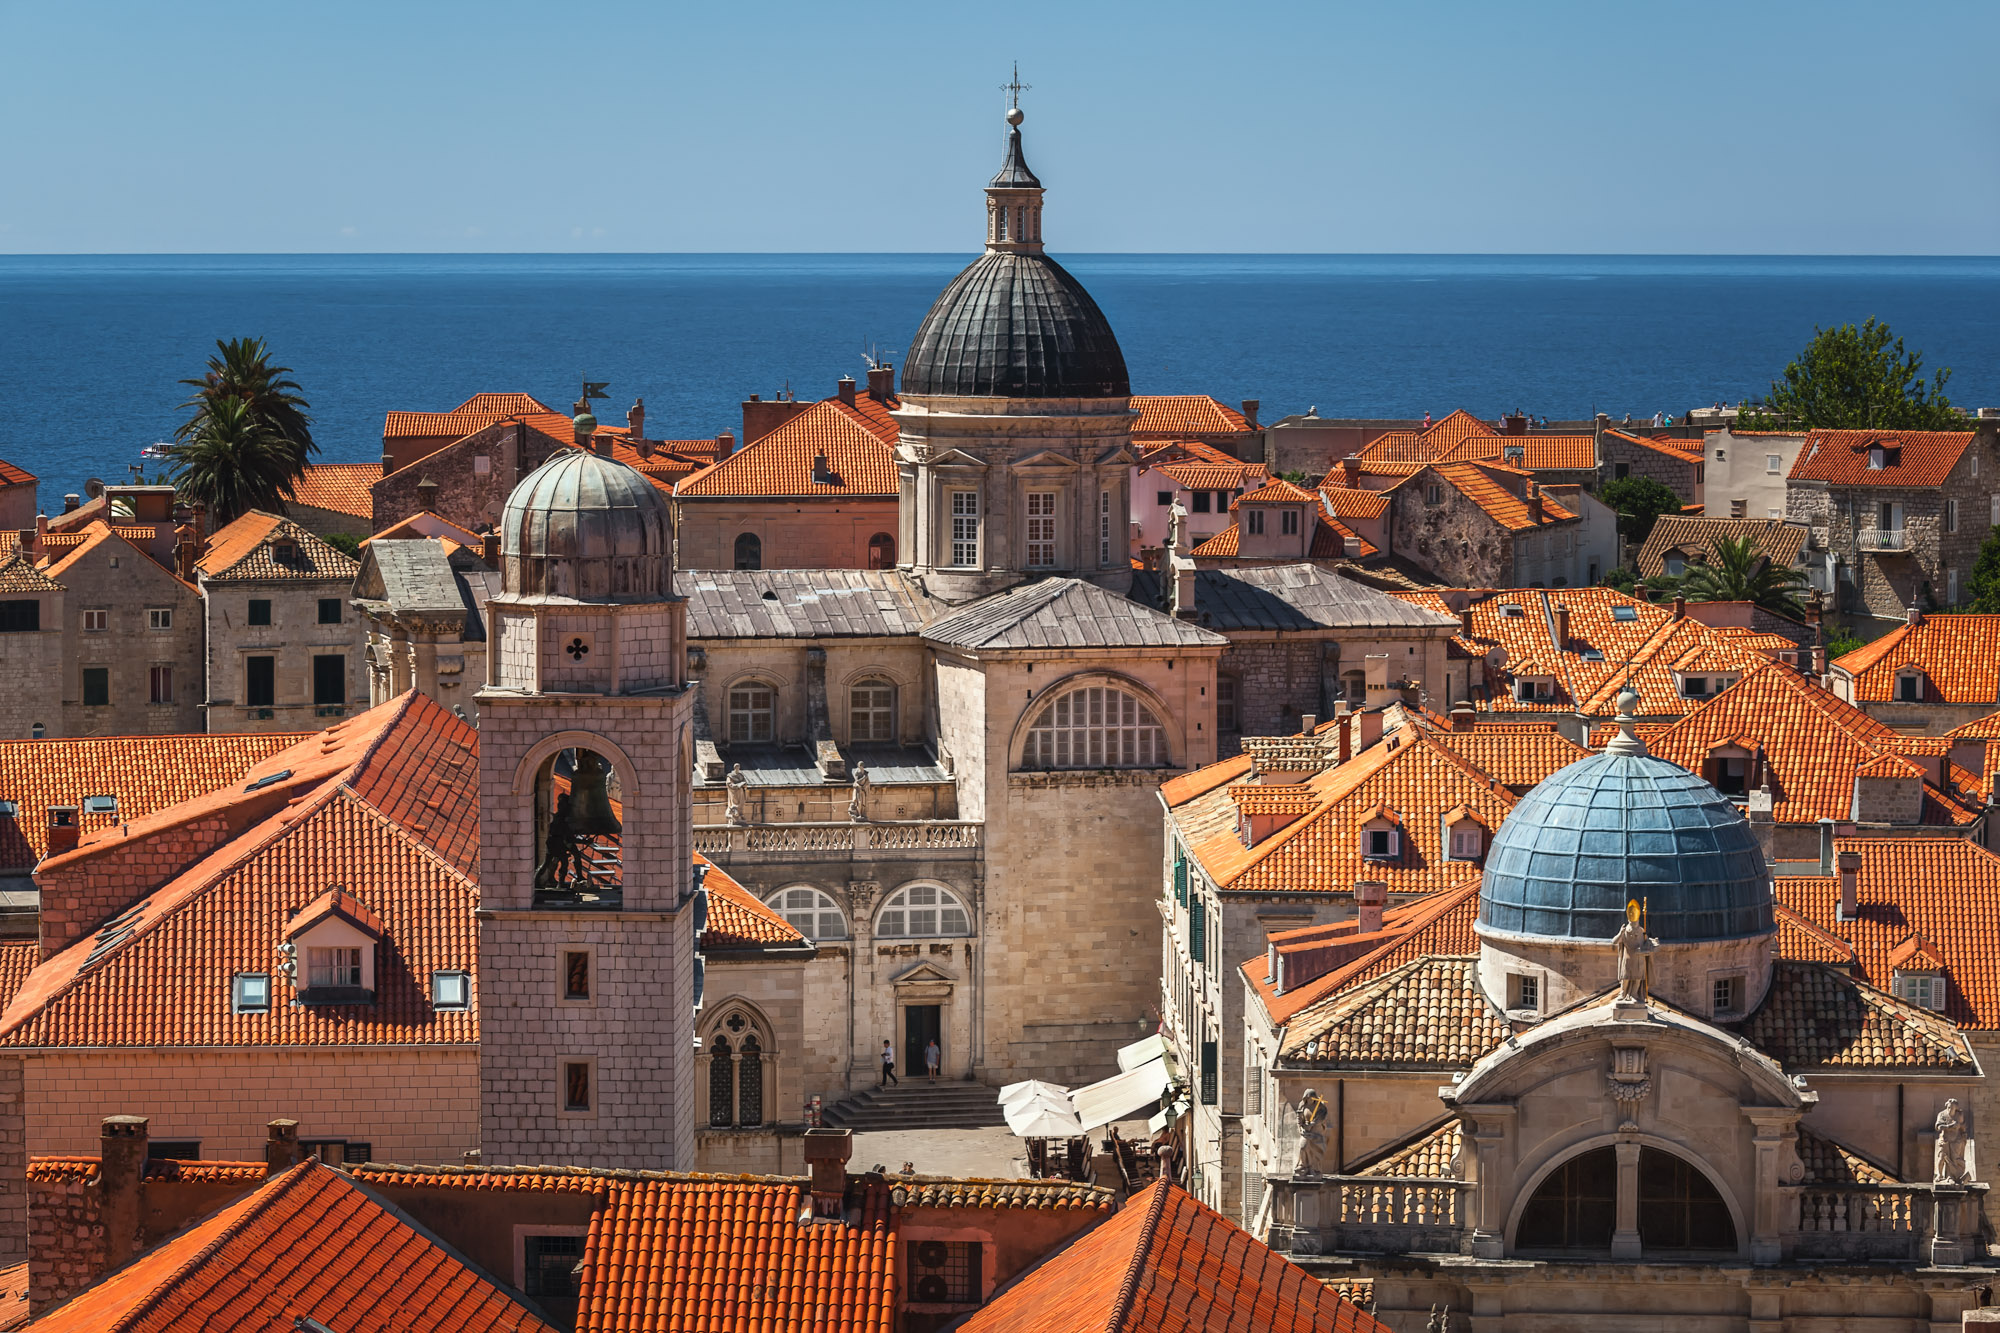 Aerial View of Dubrovnik from the City Walls, Dubrovnik, Croatia